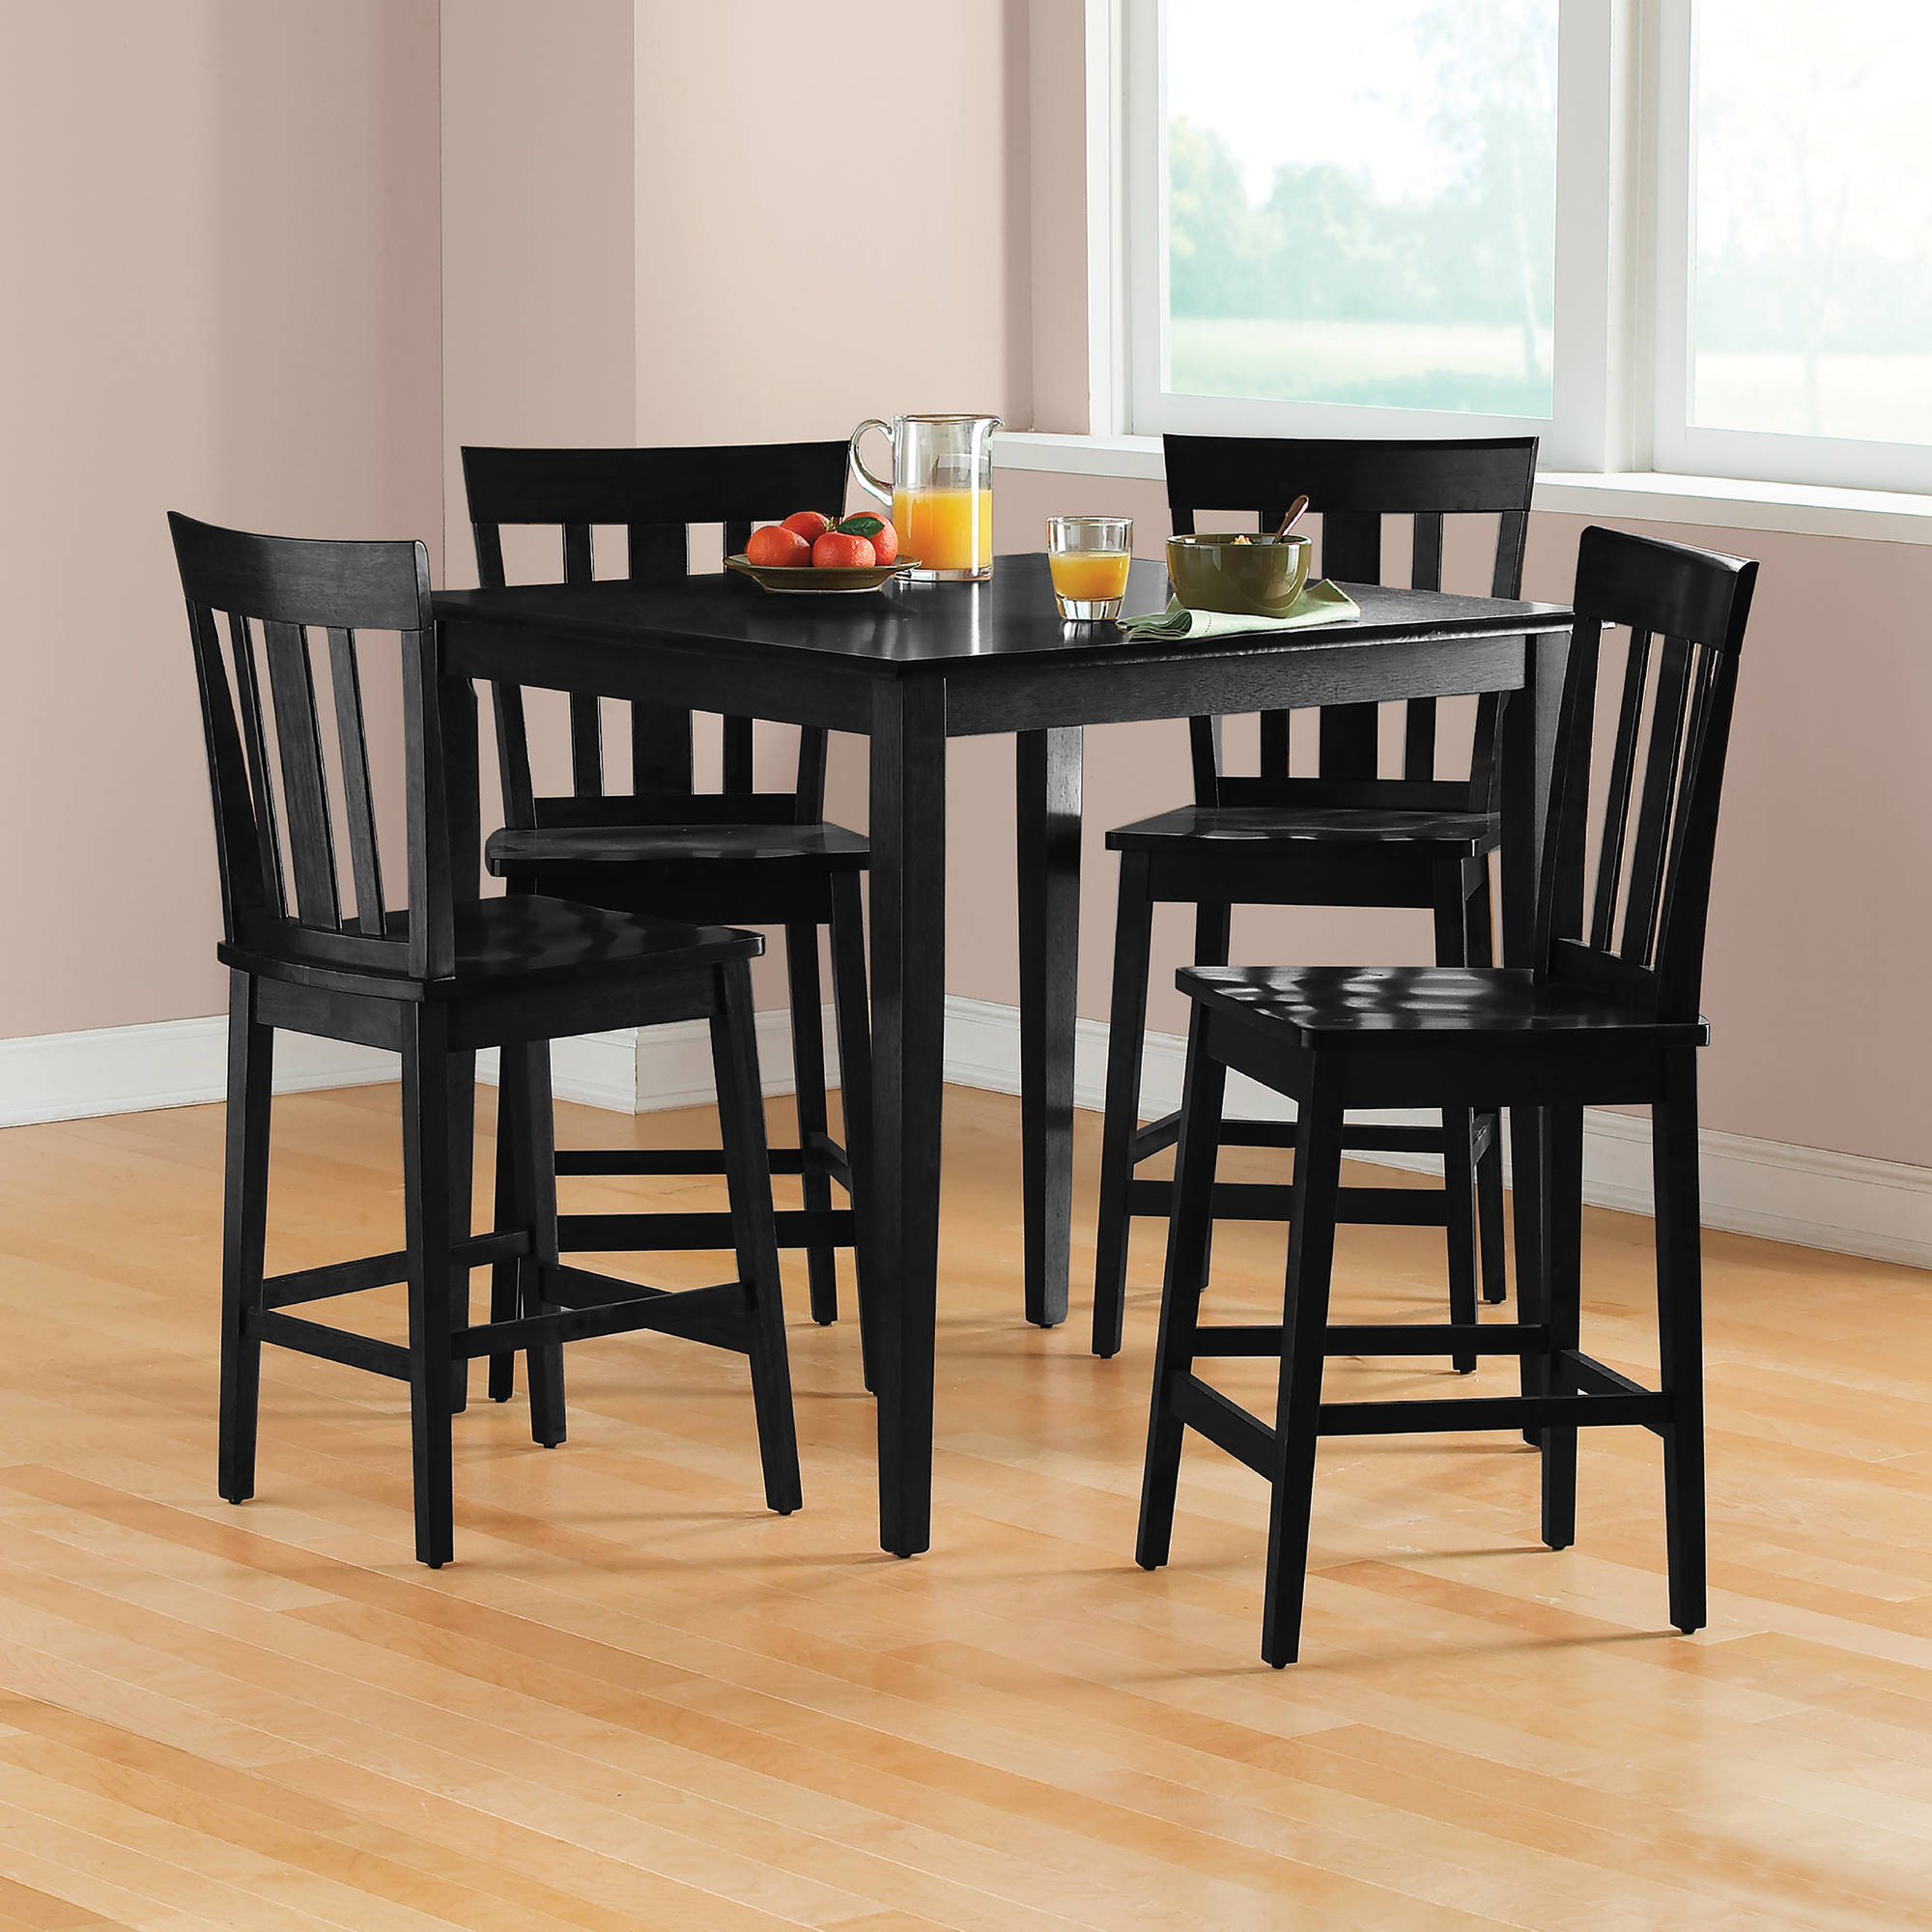 Recent Target Marketing Systems 3 Piece Breakfast Nook Dining Set Inside Crownover 3 Piece Bar Table Sets (Gallery 19 of 20)